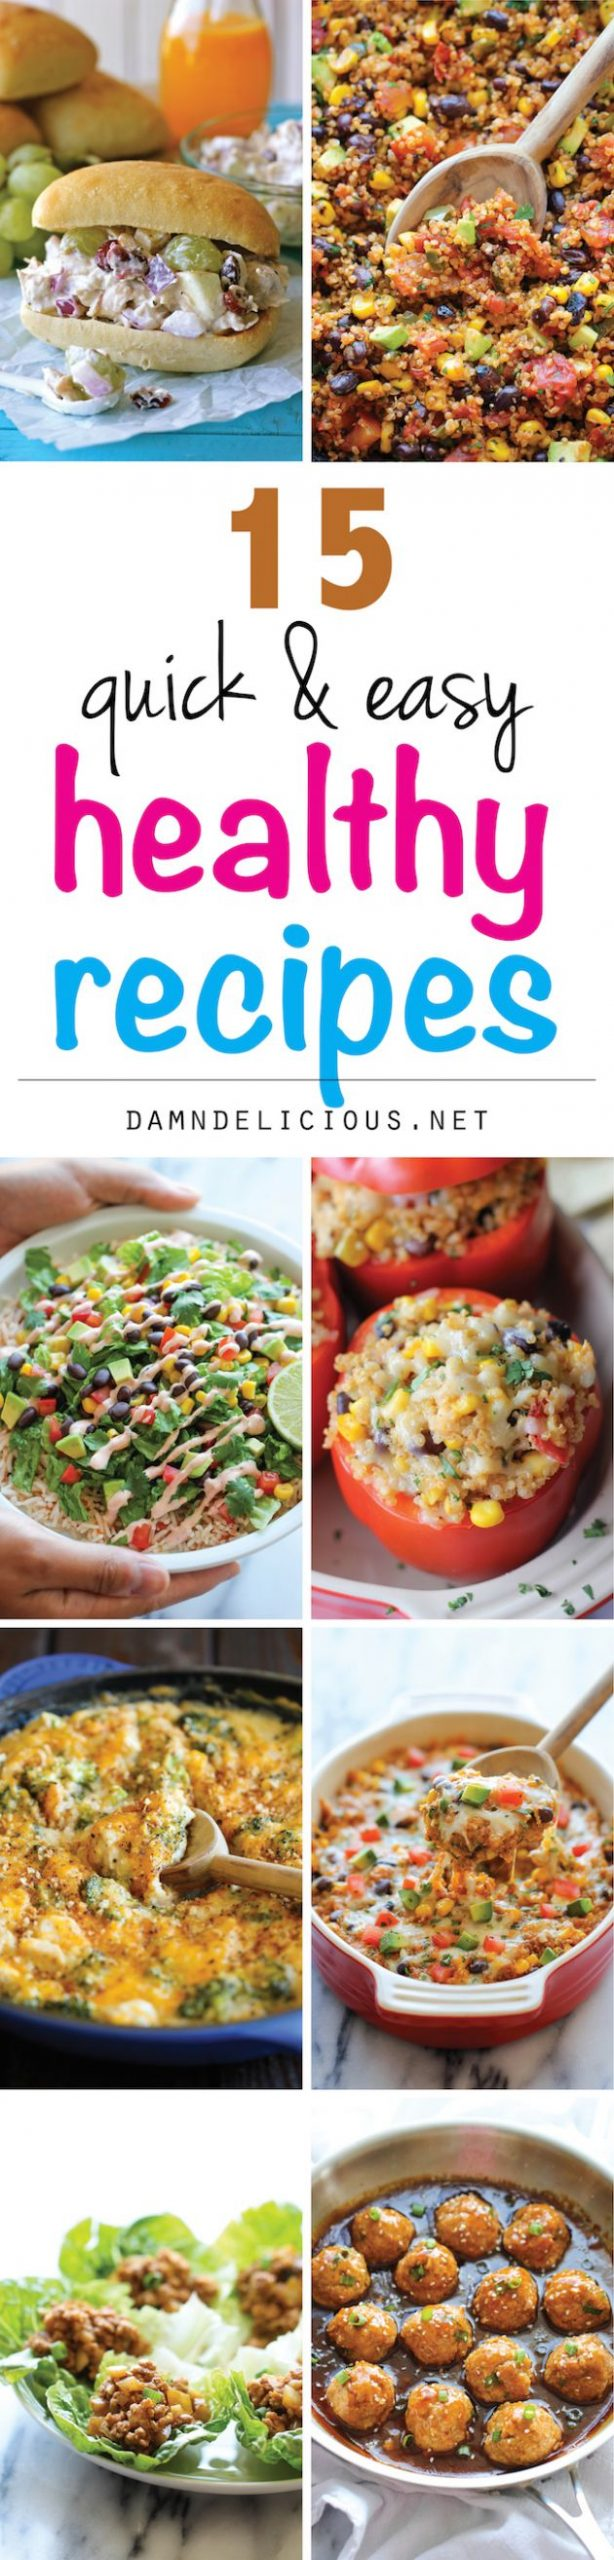 12 Quick and Easy Healthy Recipes - Damn Delicious